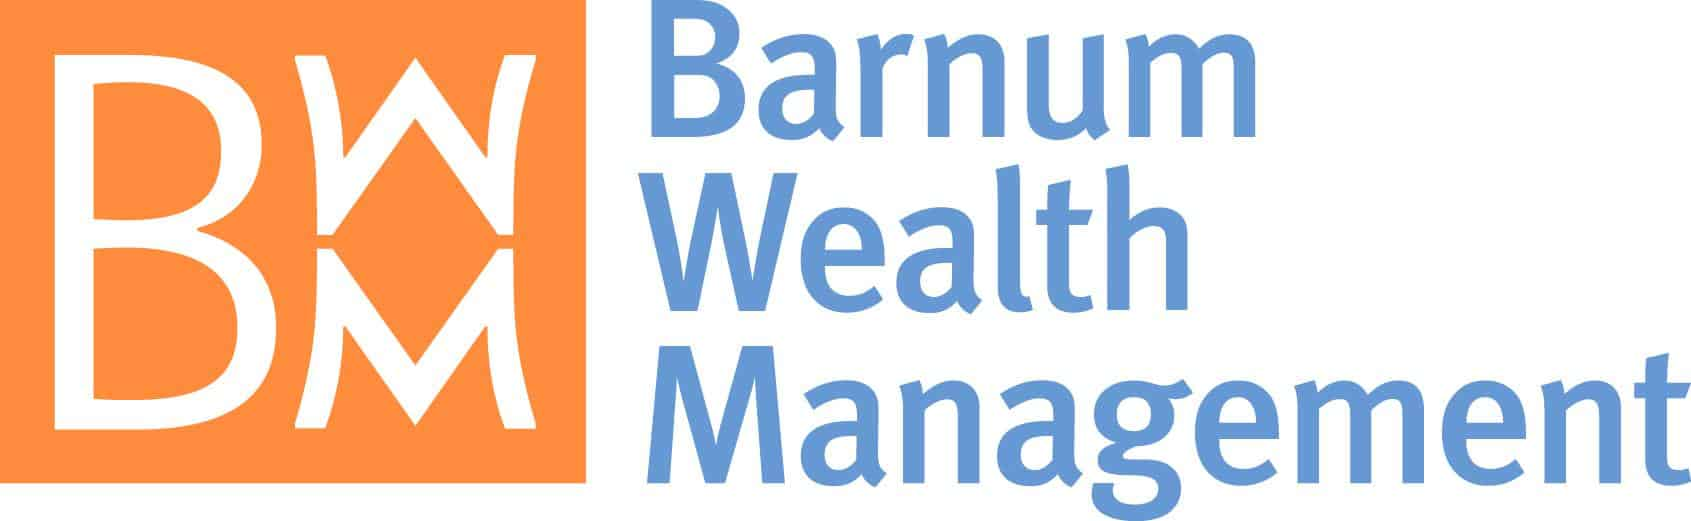 barnum wealth management logo